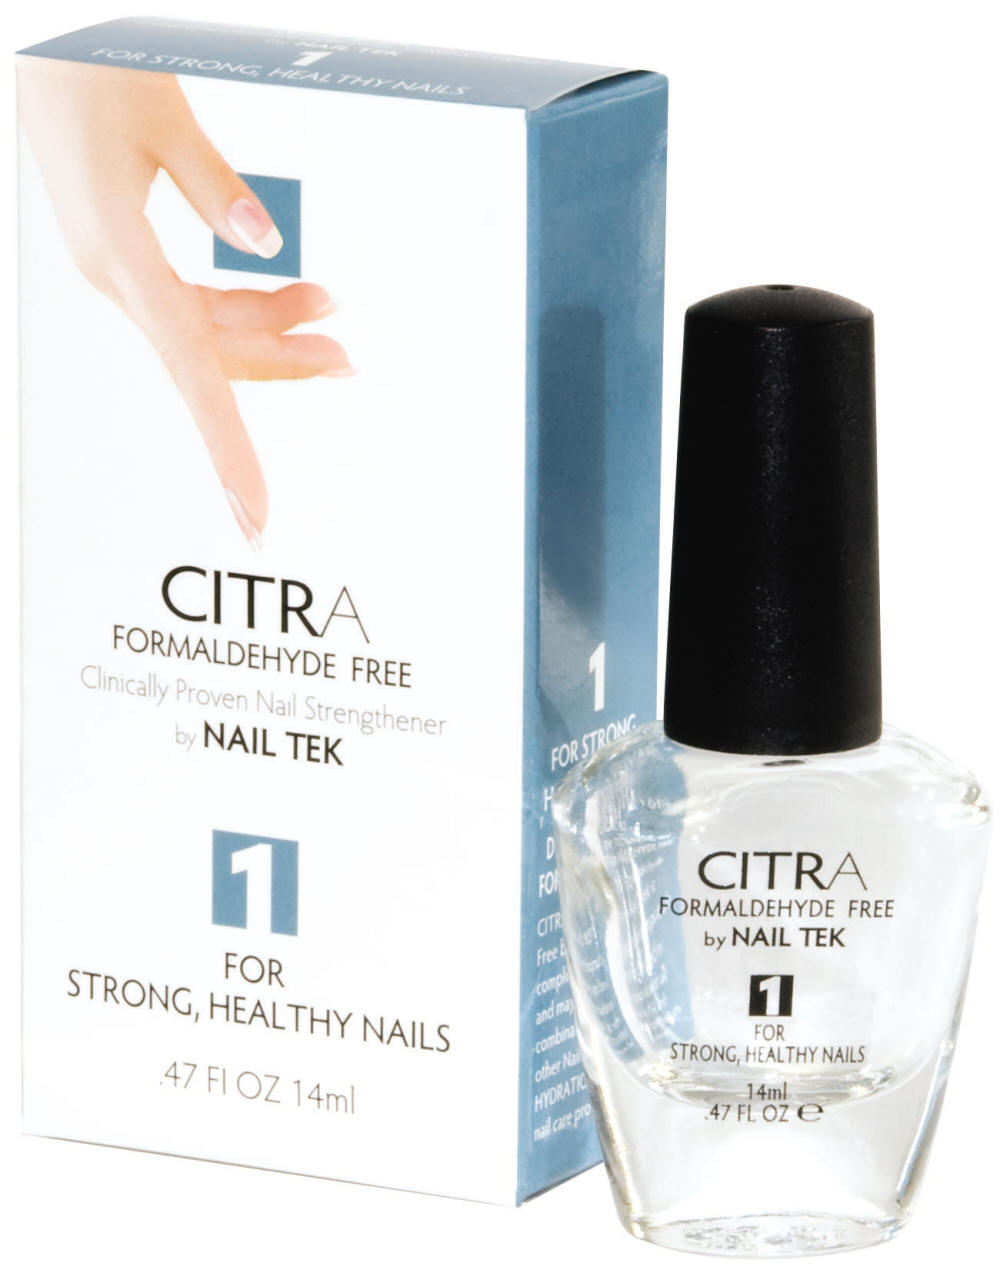 Nail Tek Citra I  0.47 Oz-Formaldhyde Free Natural Citrus Formula For Strong, Healthy Nails